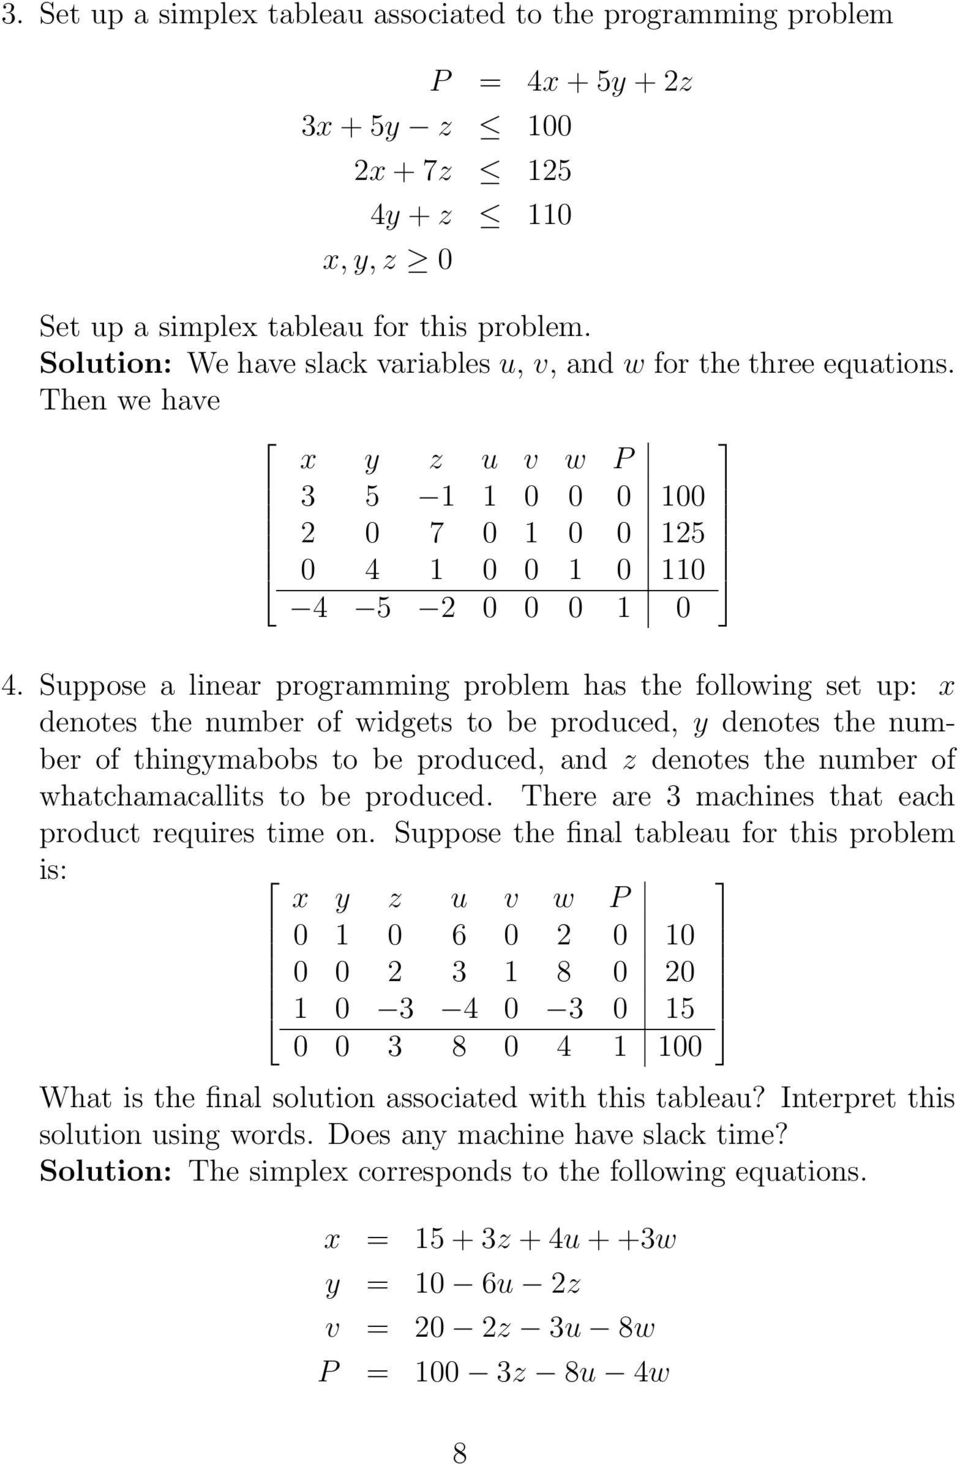 Suppose a linear programming problem has the following set up: x denotes the number of widgets to be produced, y denotes the number of thingymabobs to be produced, and z denotes the number of